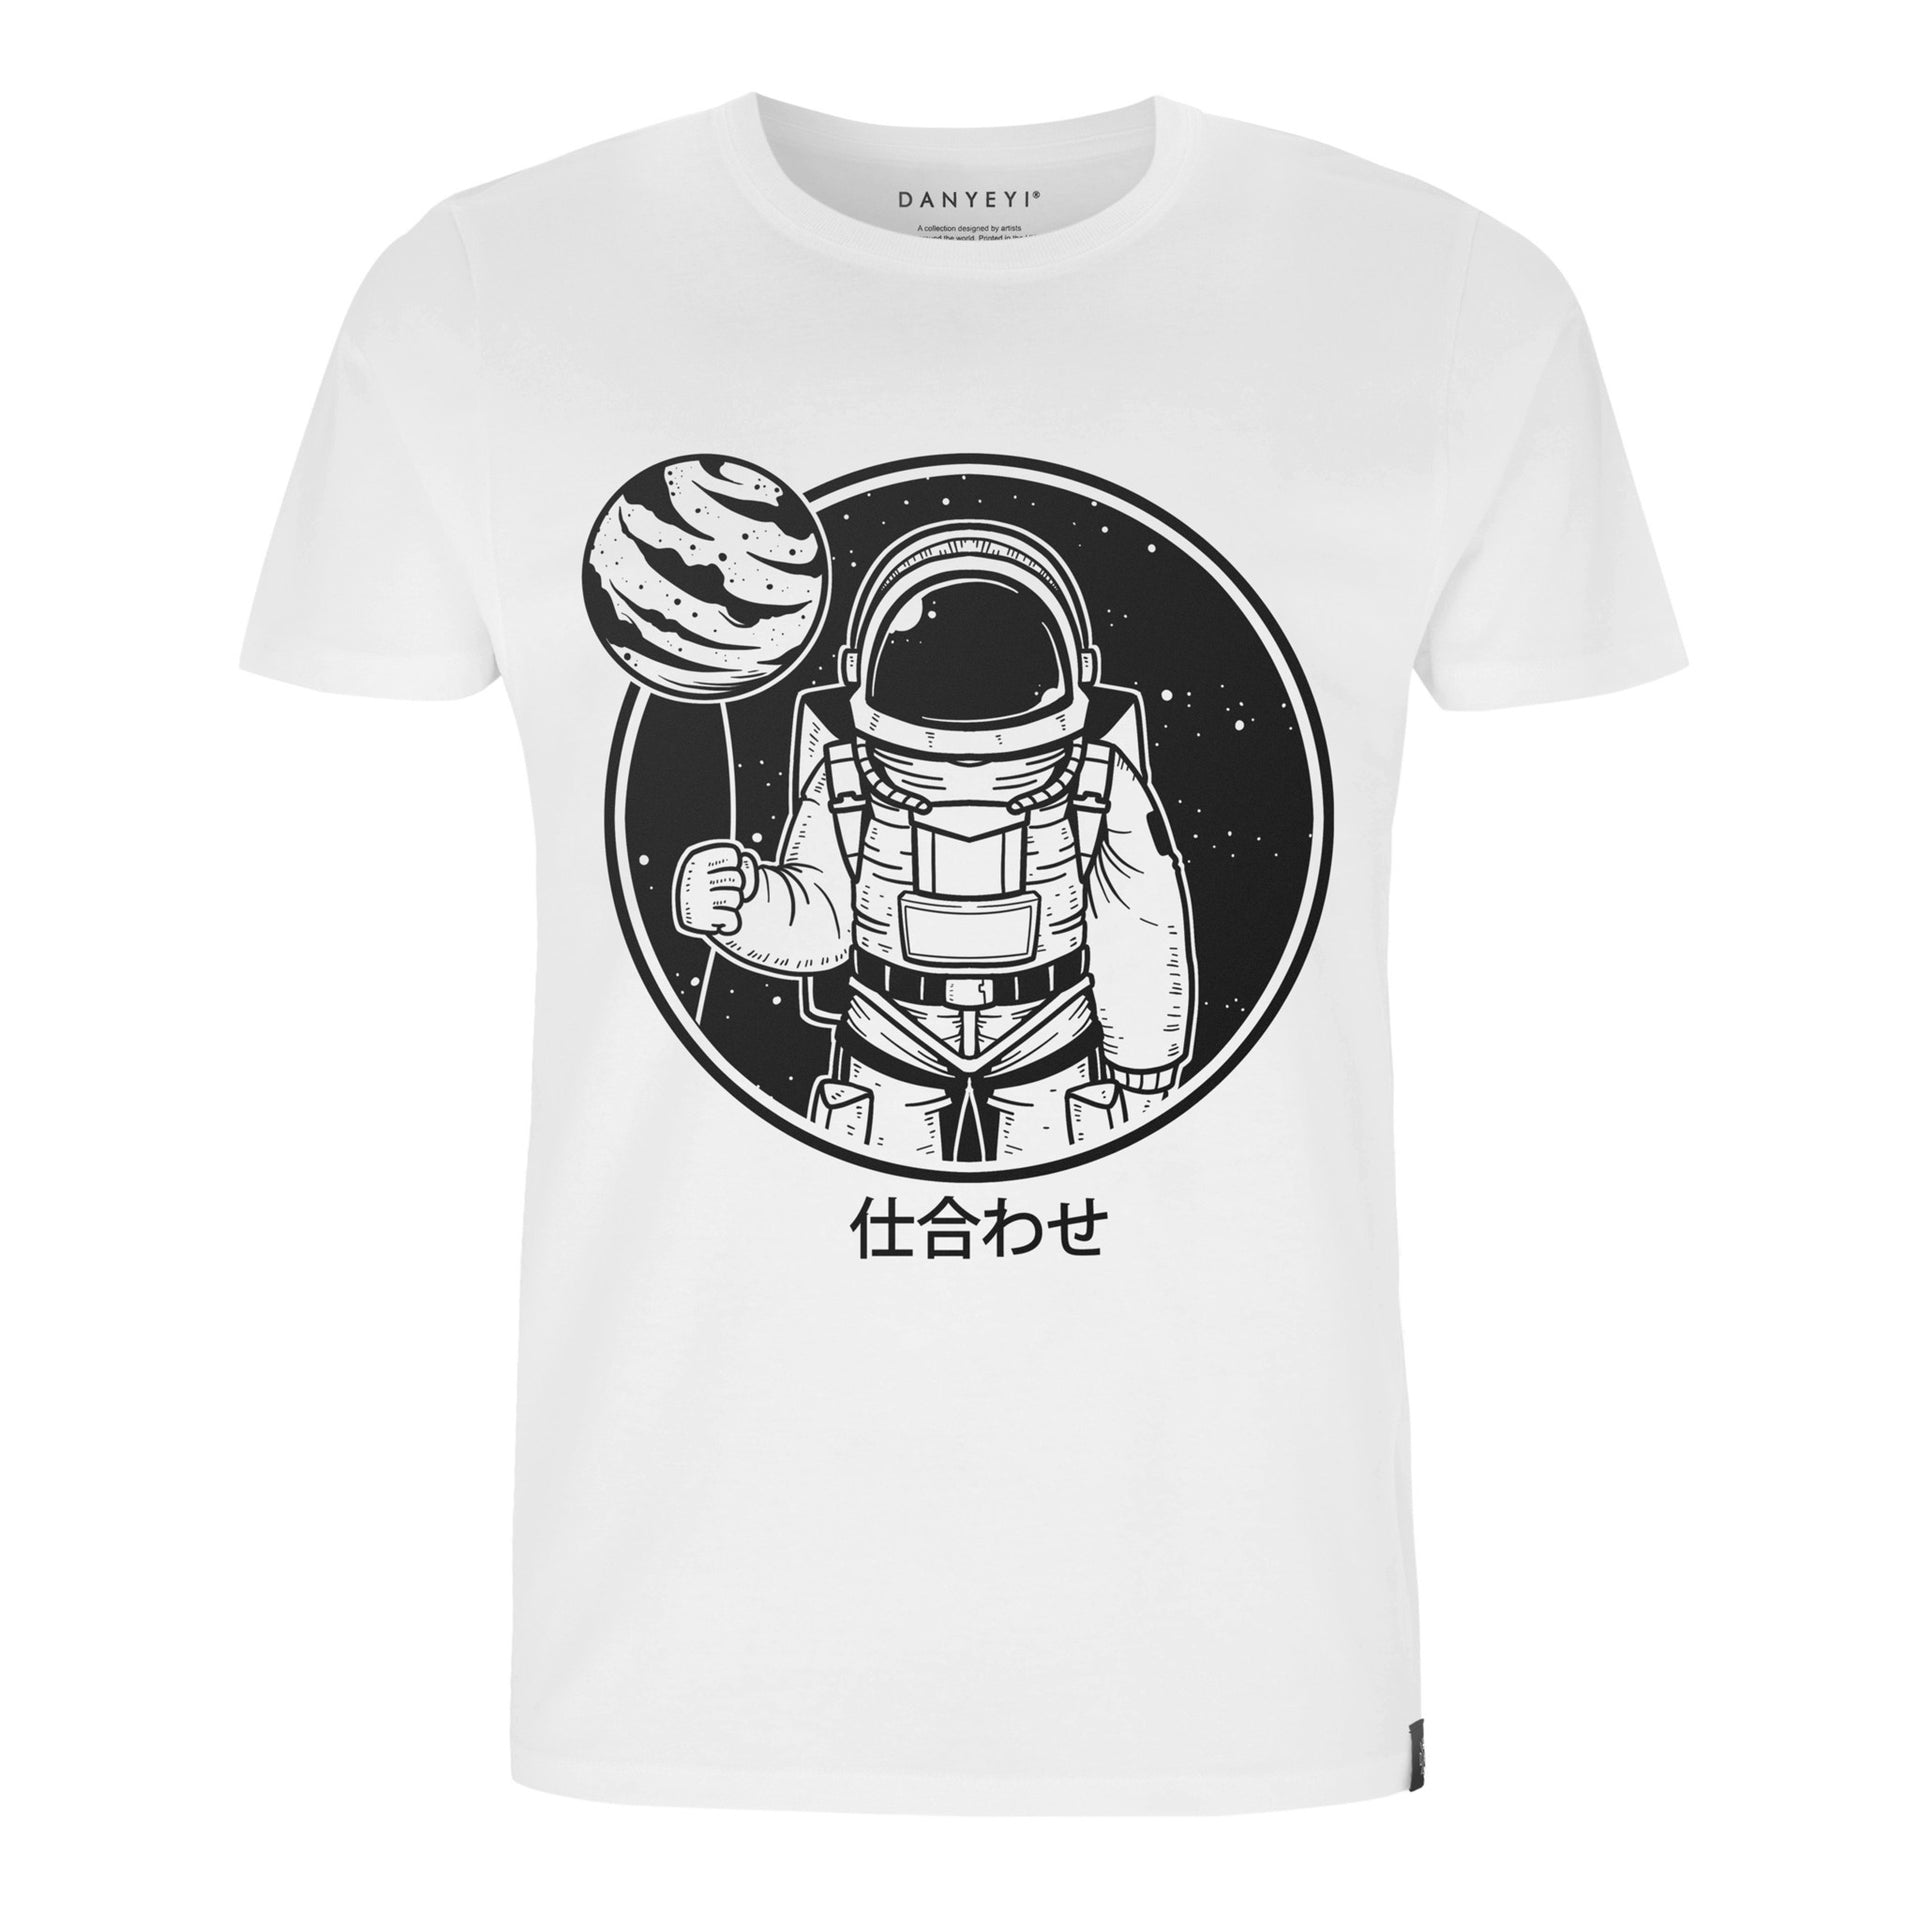 Spaced Out - White / Black - Crew & Deep V Neck